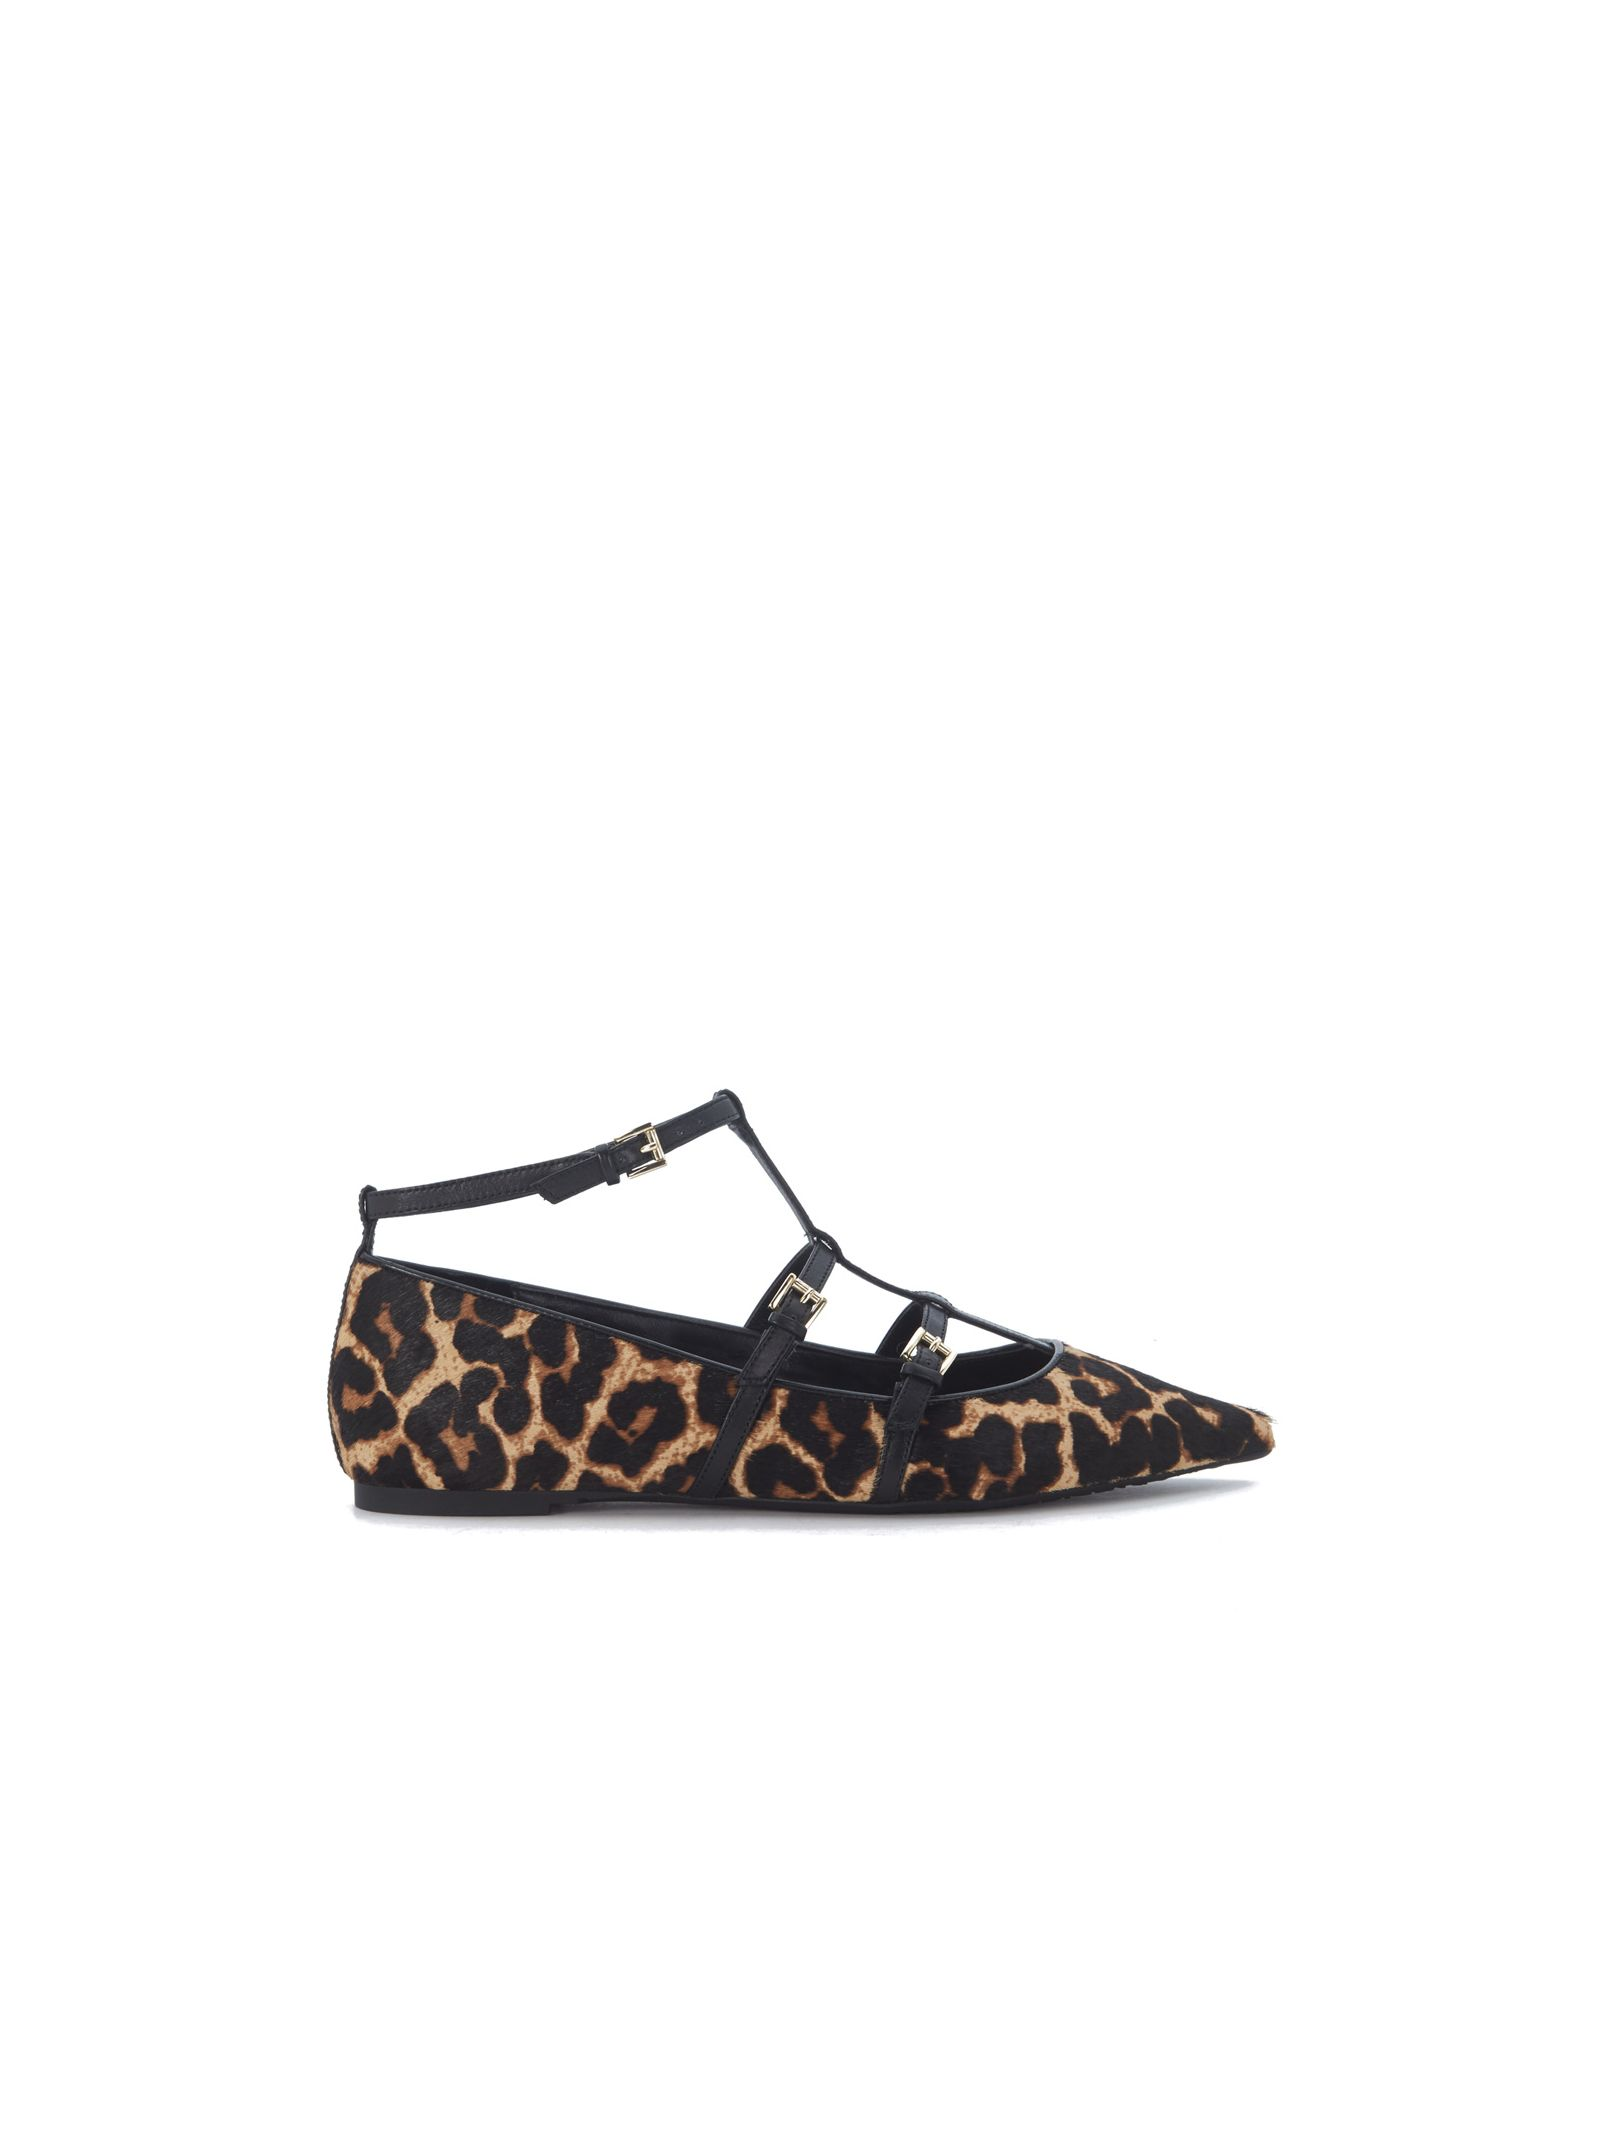 michael kors female michael kors marta flat shoes in spotted cow hair with buckles